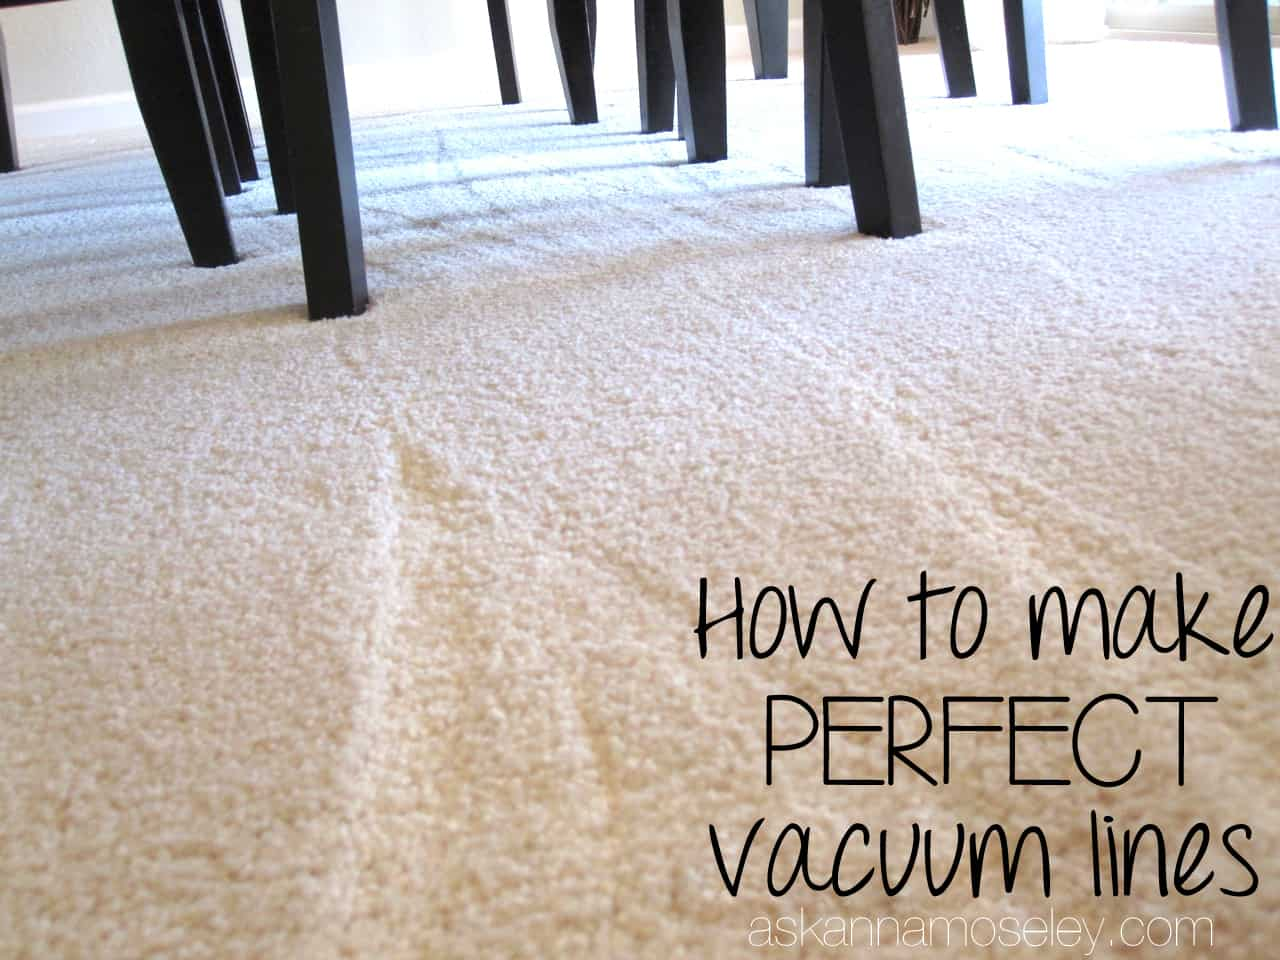 How To Make Perfect Vacuum Lines